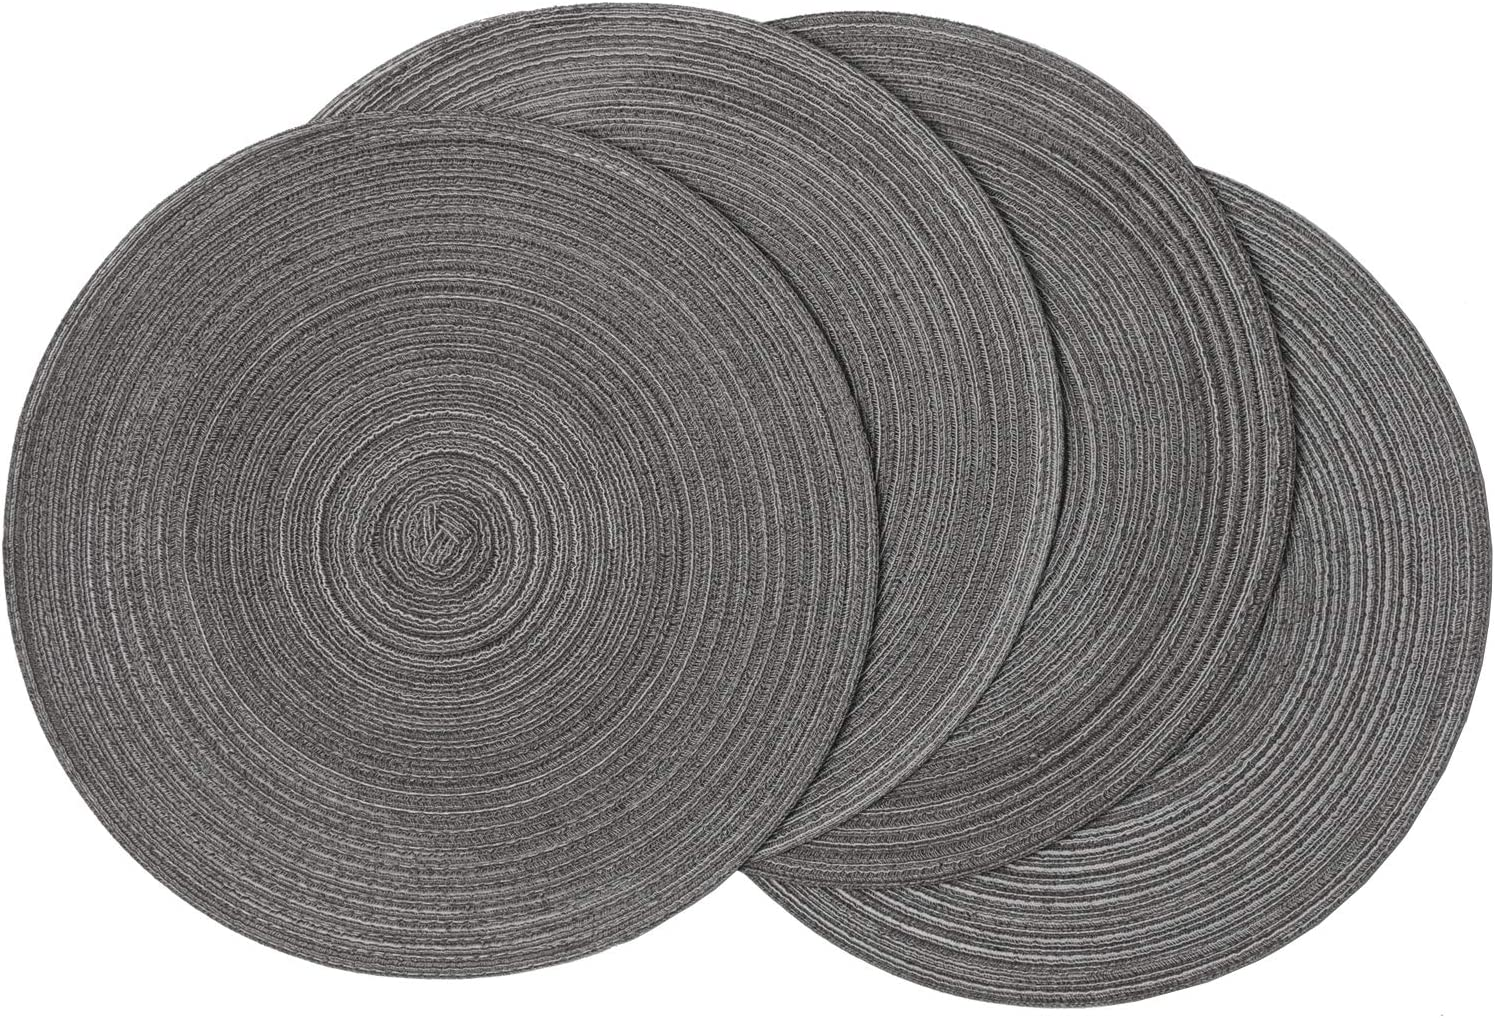 SHACOS Round Placemats Set of 4 Round Table Placemats Braided Cotton Place Mats 15 inch for Kitchen Dining Table Holiday Party (Black Grey, 4)